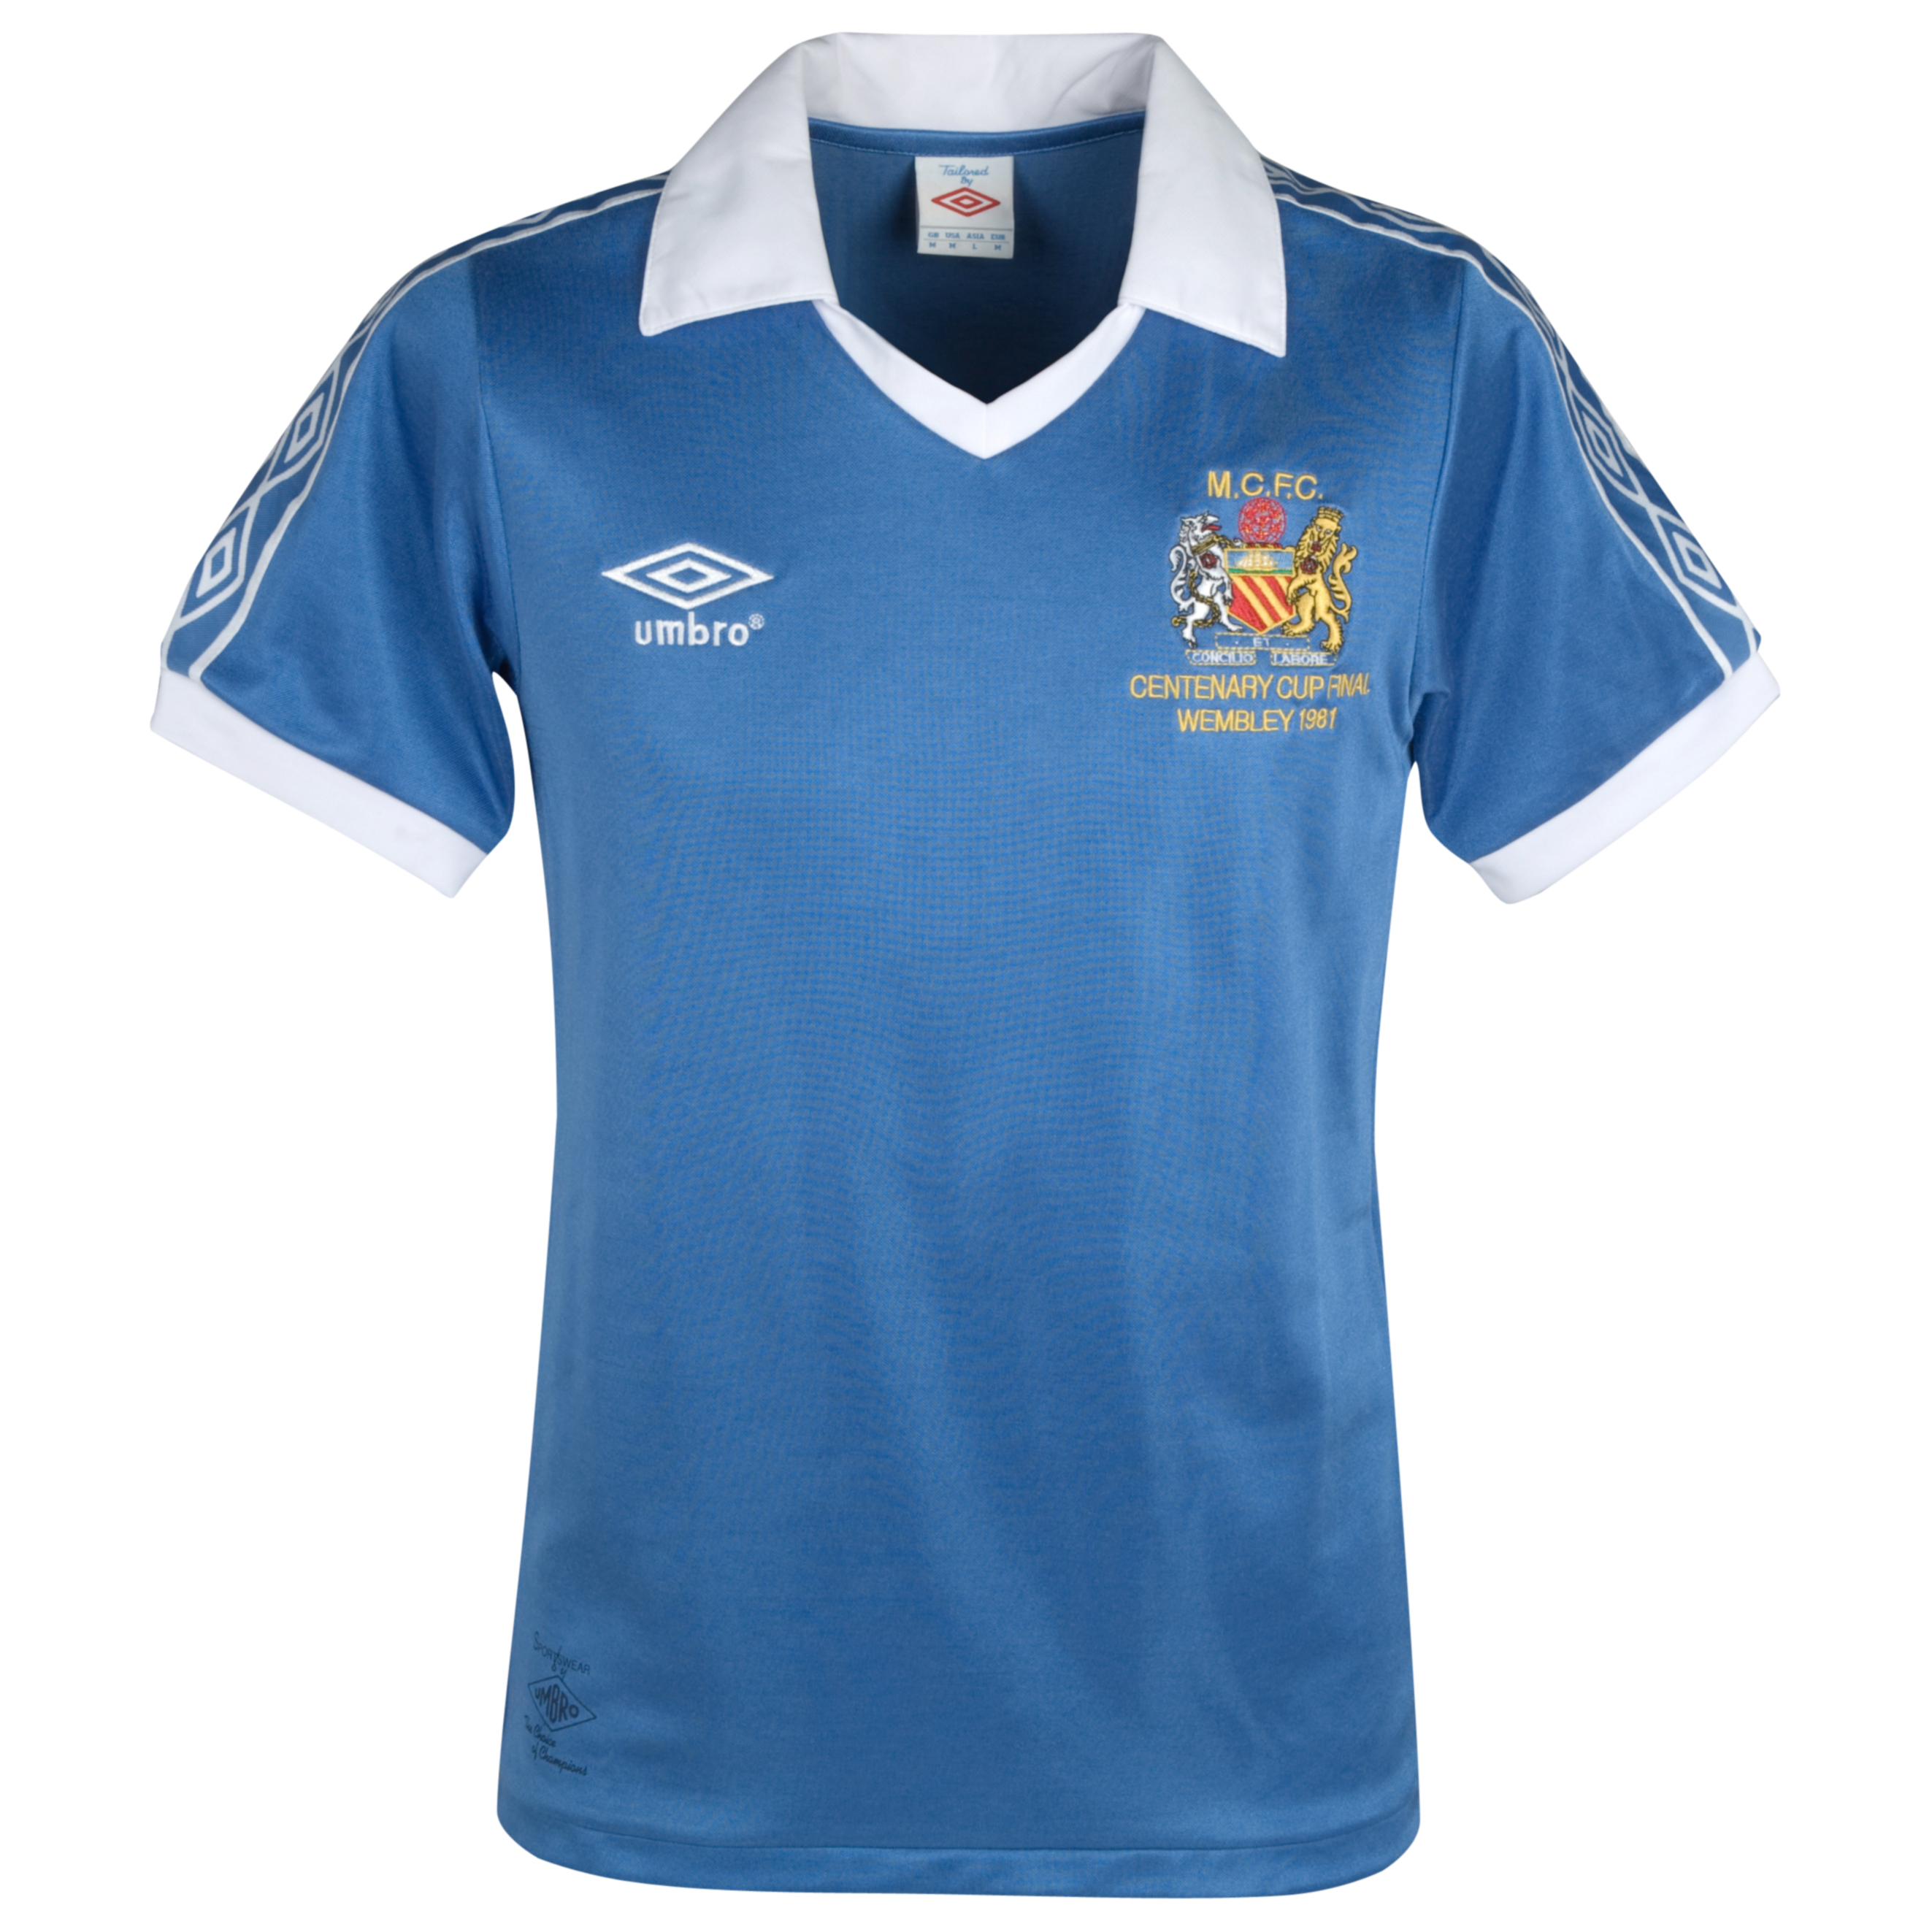 Manchester City 1981 Centenary FA Cup Final Shirt - Regatta/White